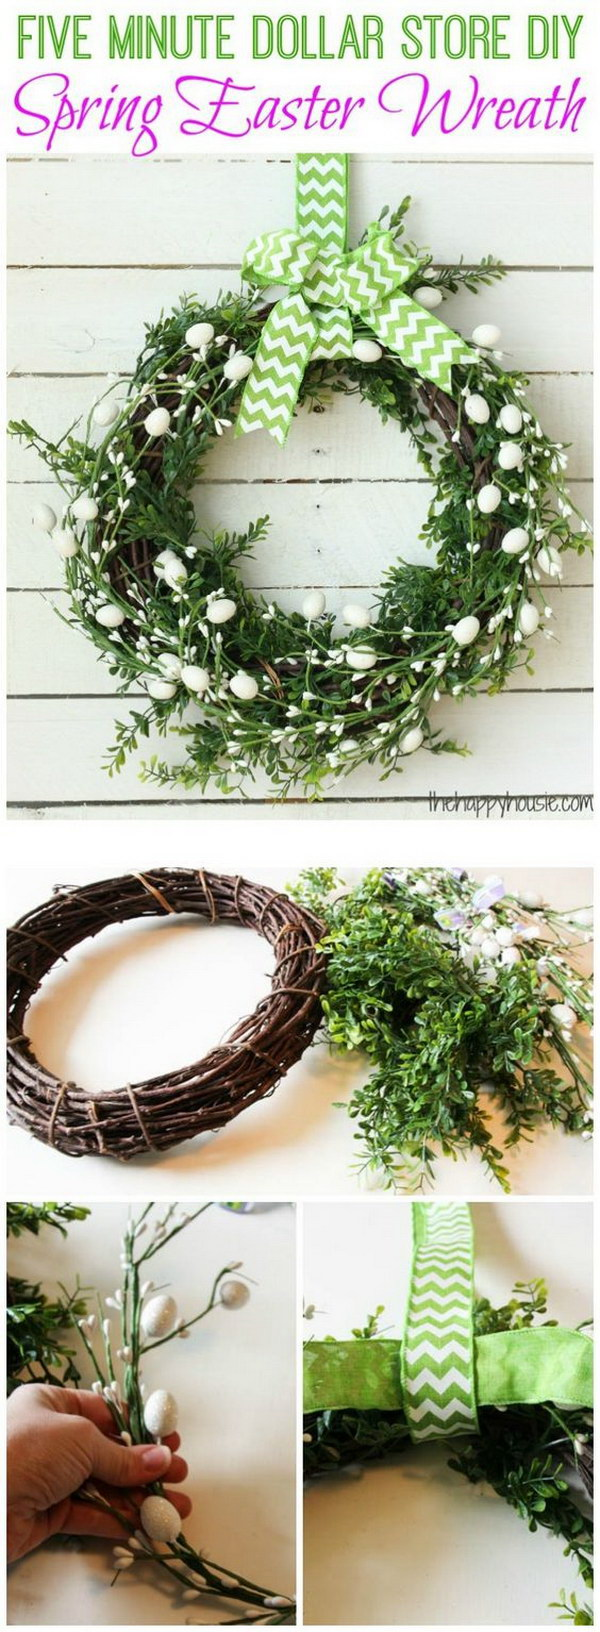 5 Minutes Dollar Store DIY Spring Easter Wreath